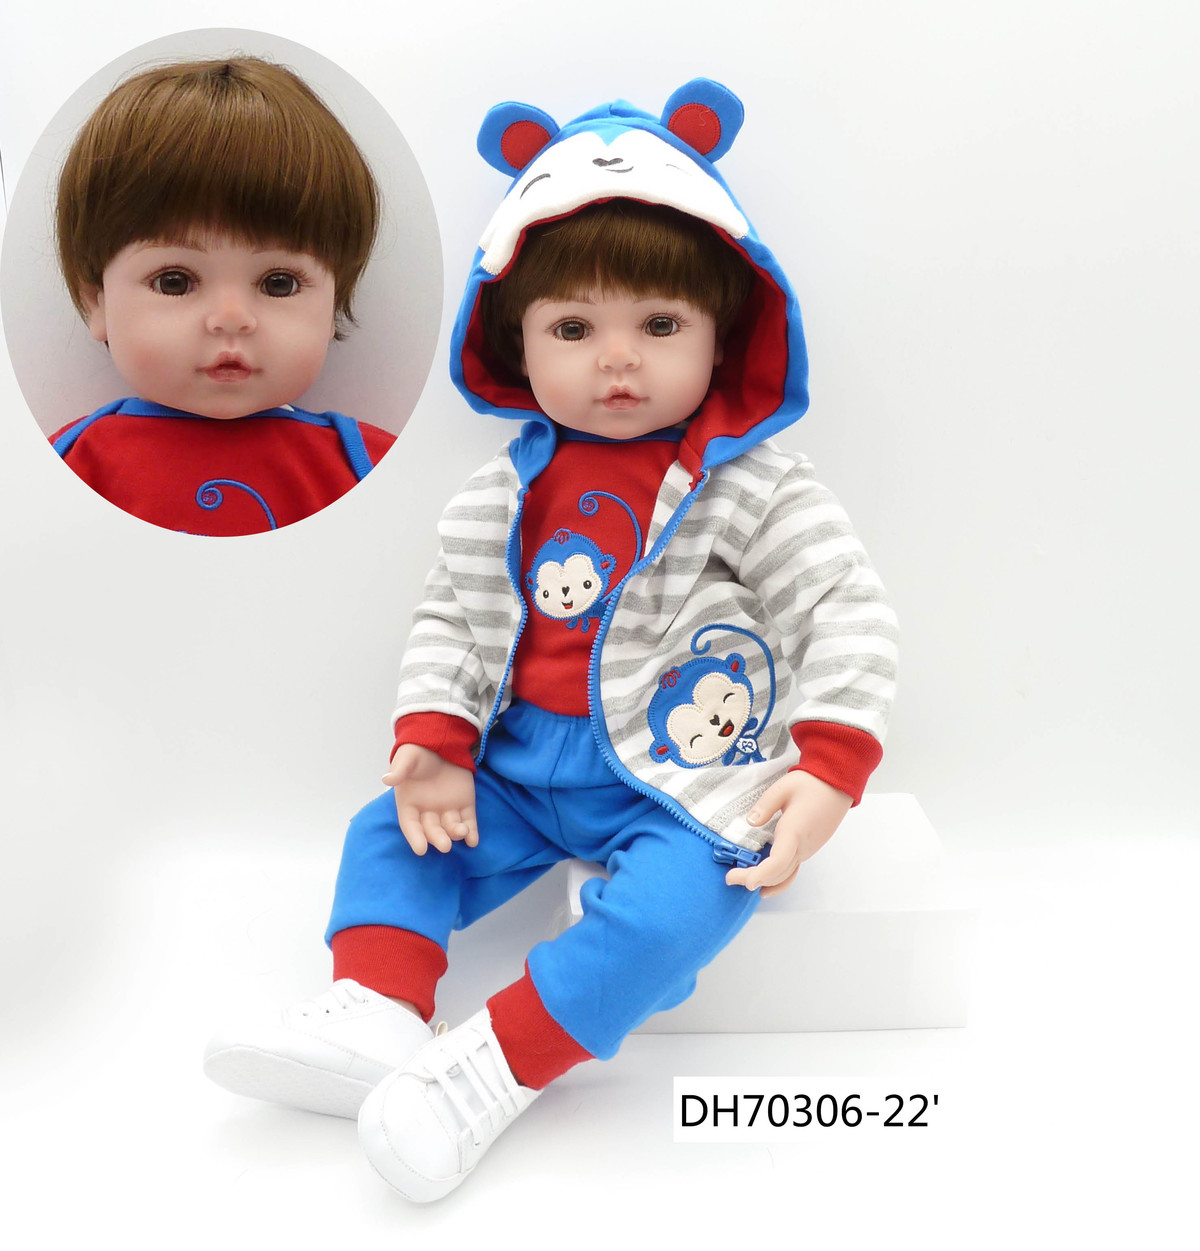 24 inch Soft Lifelike Silicone Vinyl Reborn Baby Boy Doll Equipped With Small Monkey Suit Classic Small White Shoes Set Toy